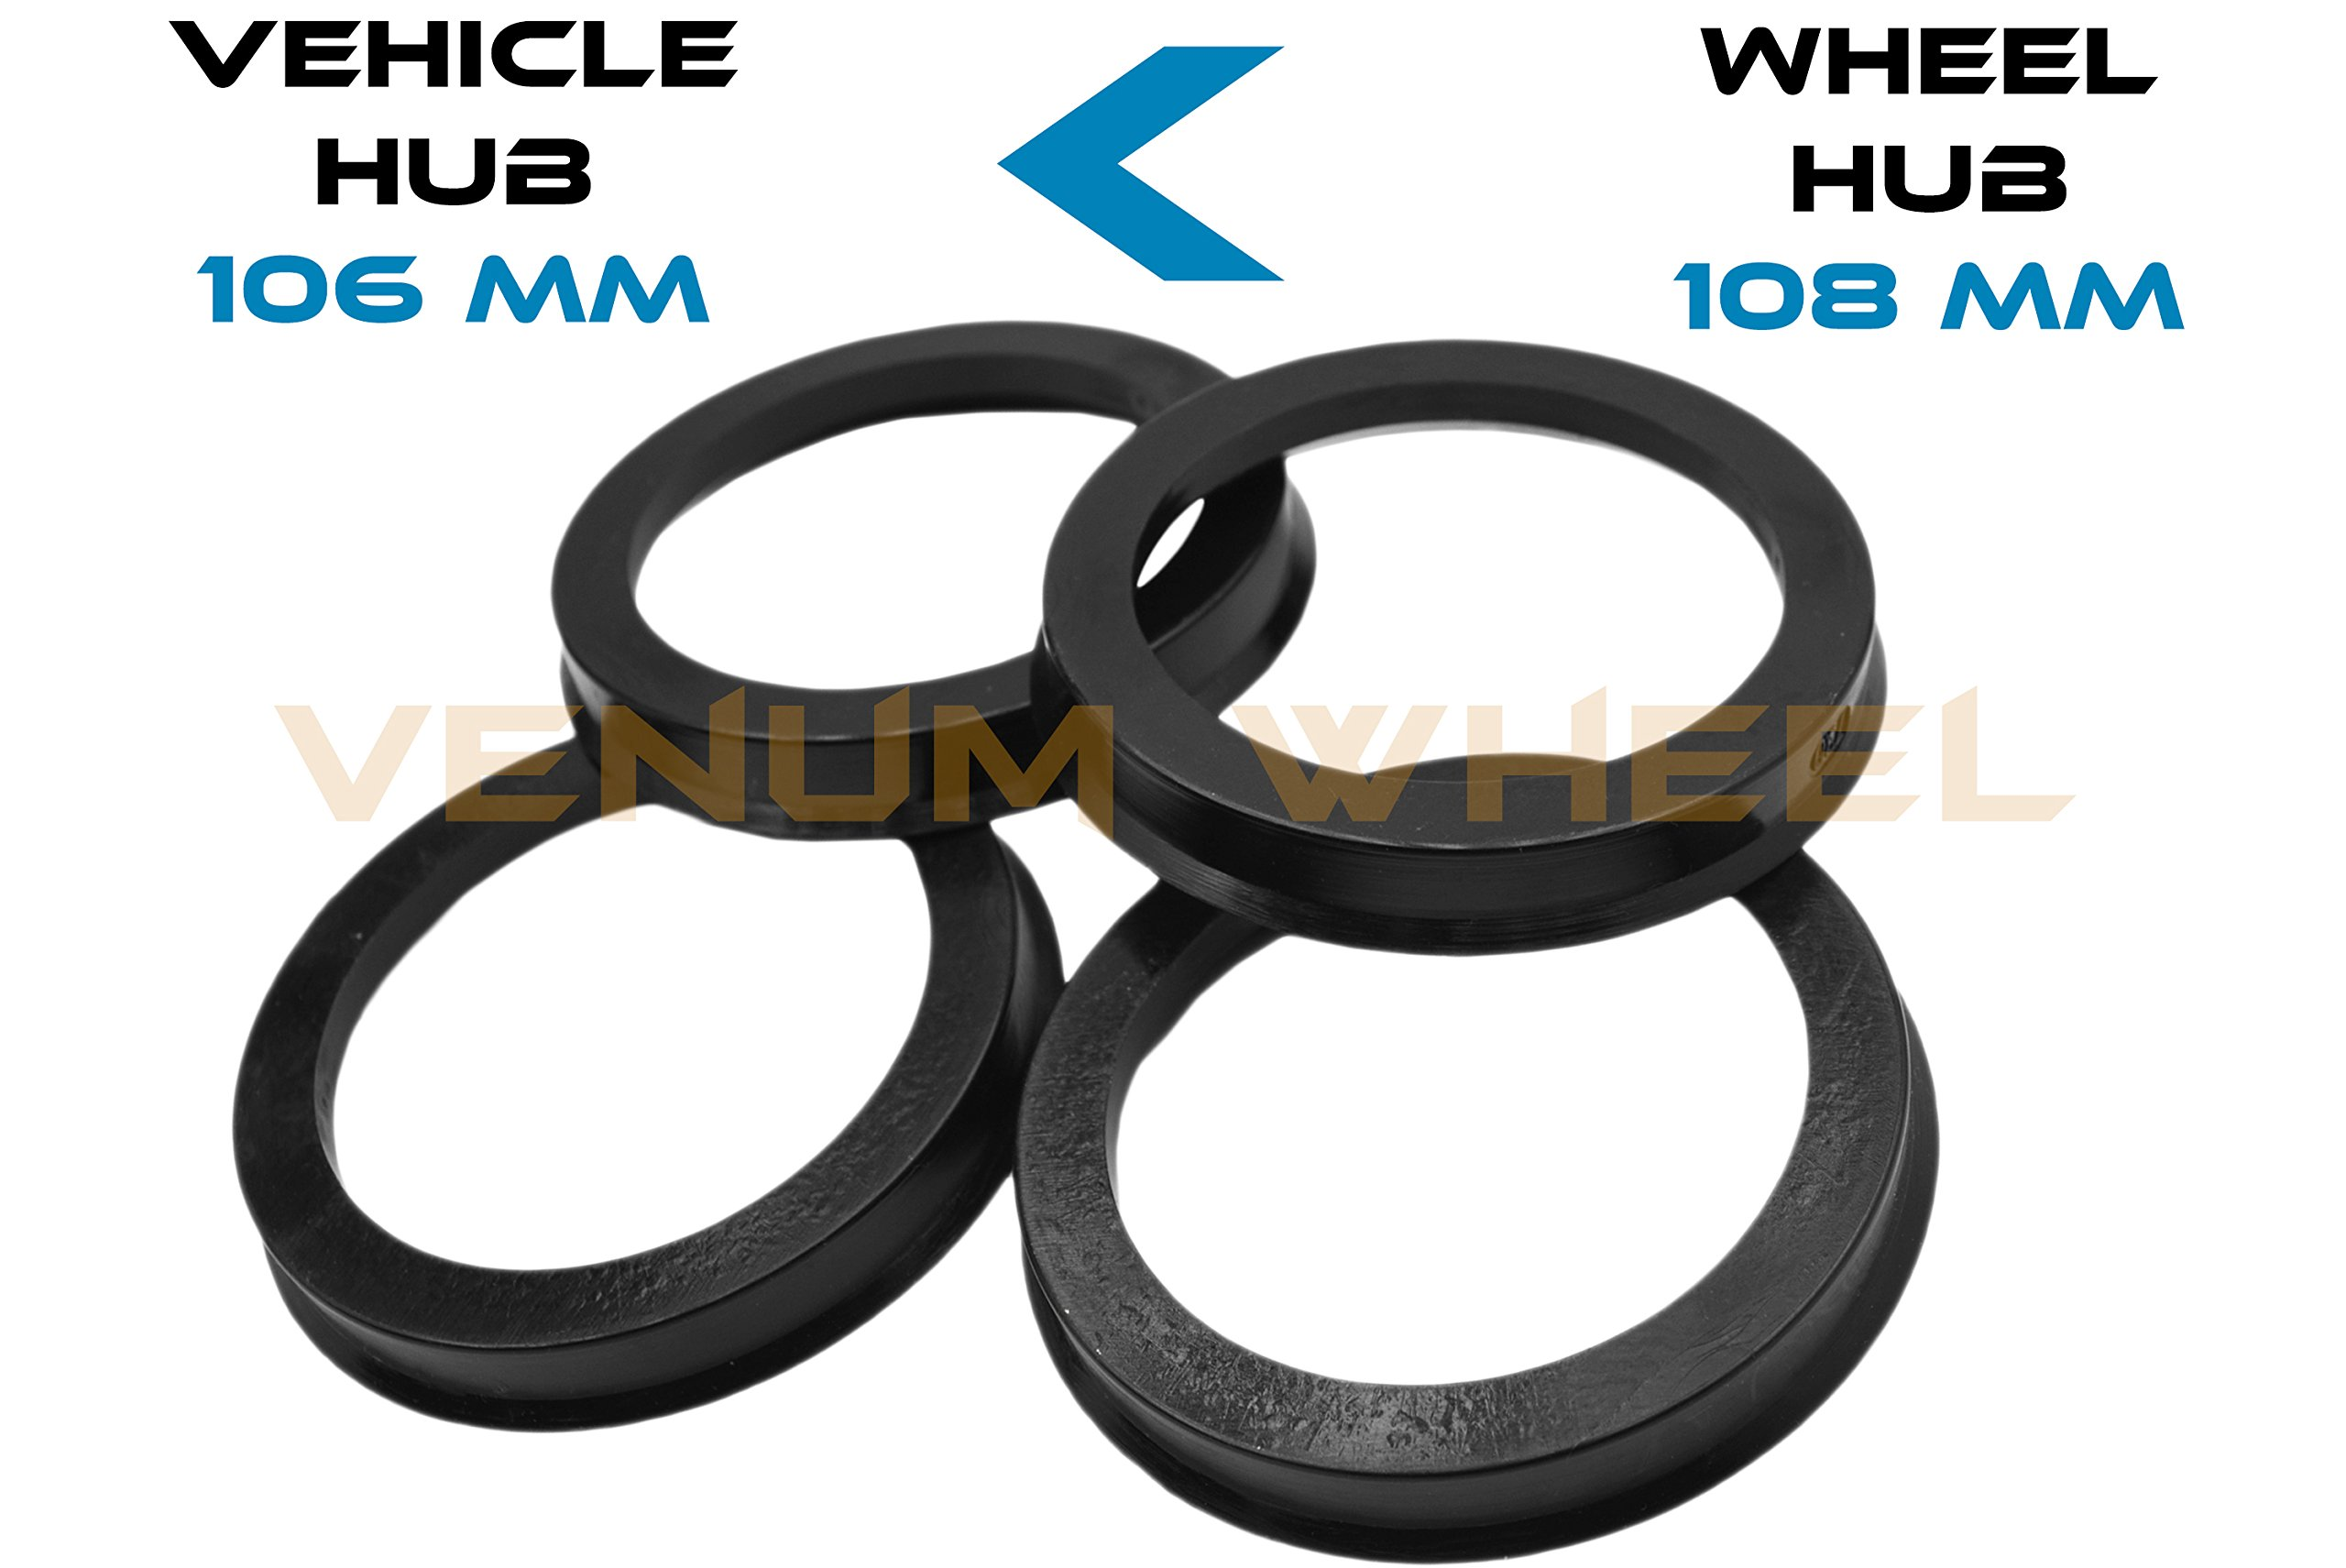 4 Hub Centric Rings 106 ID To 108 OD Black Polycarbonate Material ( Vehicle 106mm to Wheel 108mm)